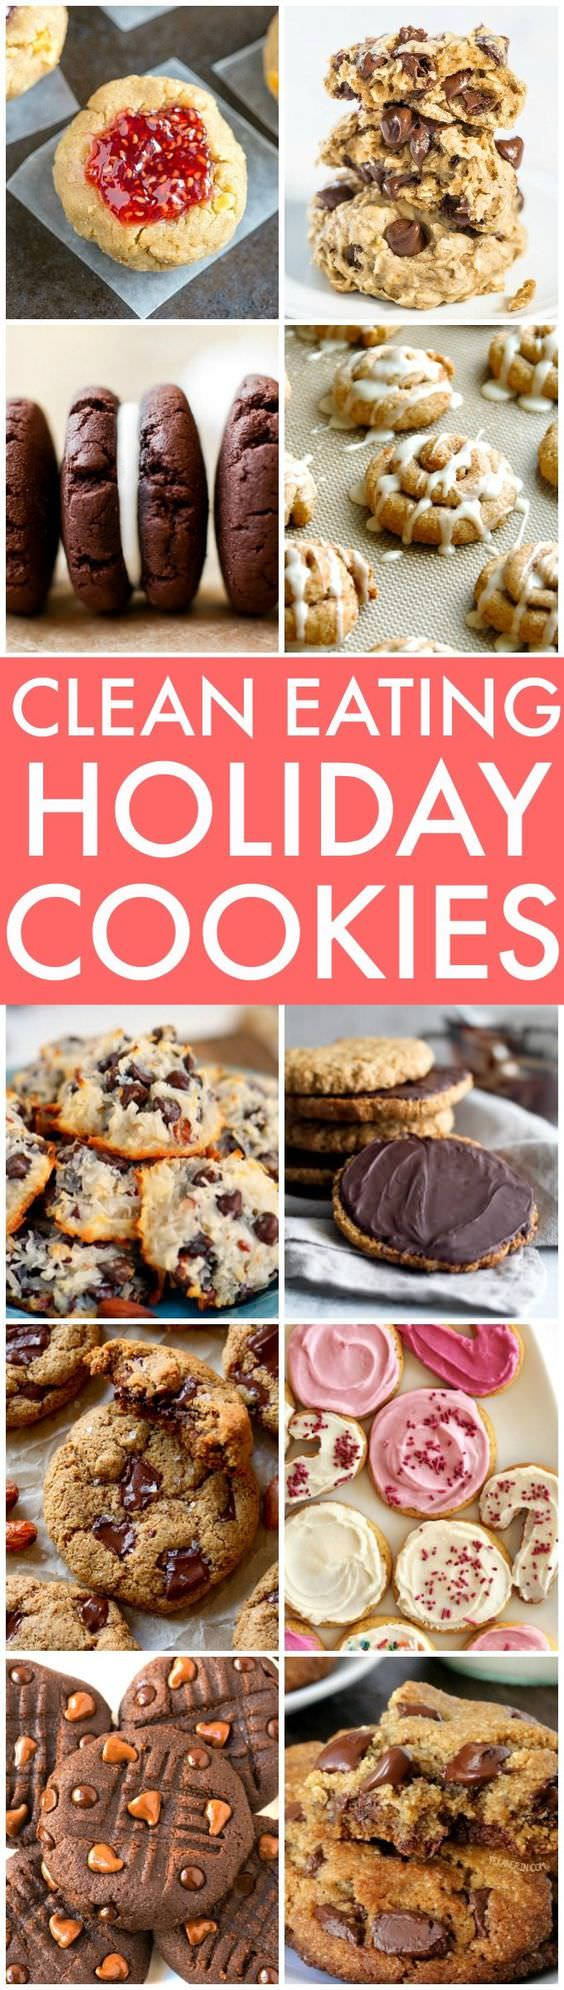 Easy, delicious and simple cookies including no-bakes, soft baked and super soft and chewy ones! Many are made without oil, butter, excessive sugar or flour and paleo, vegan, and gluten free options!